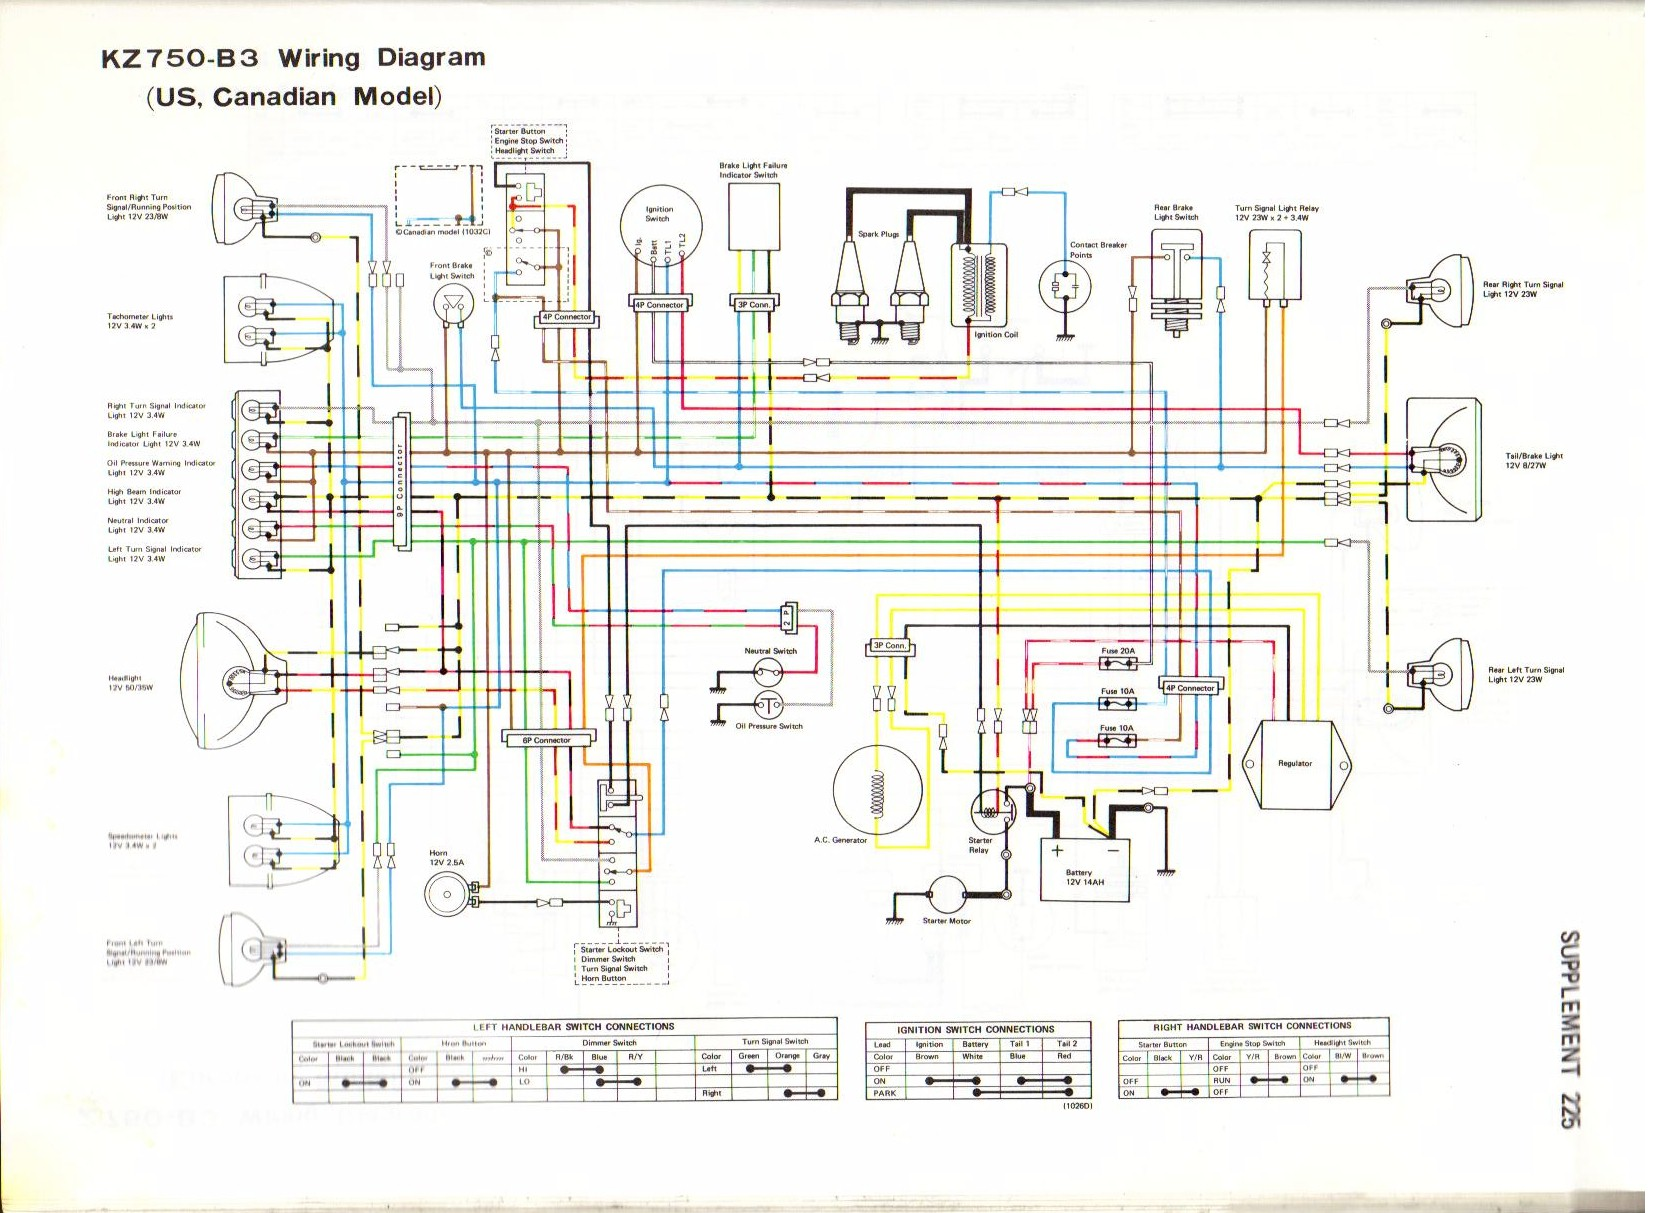 kz750b3 service manuals kz750 twin kz750 twins com 1980 kawasaki kz750 wiring diagram at virtualis.co